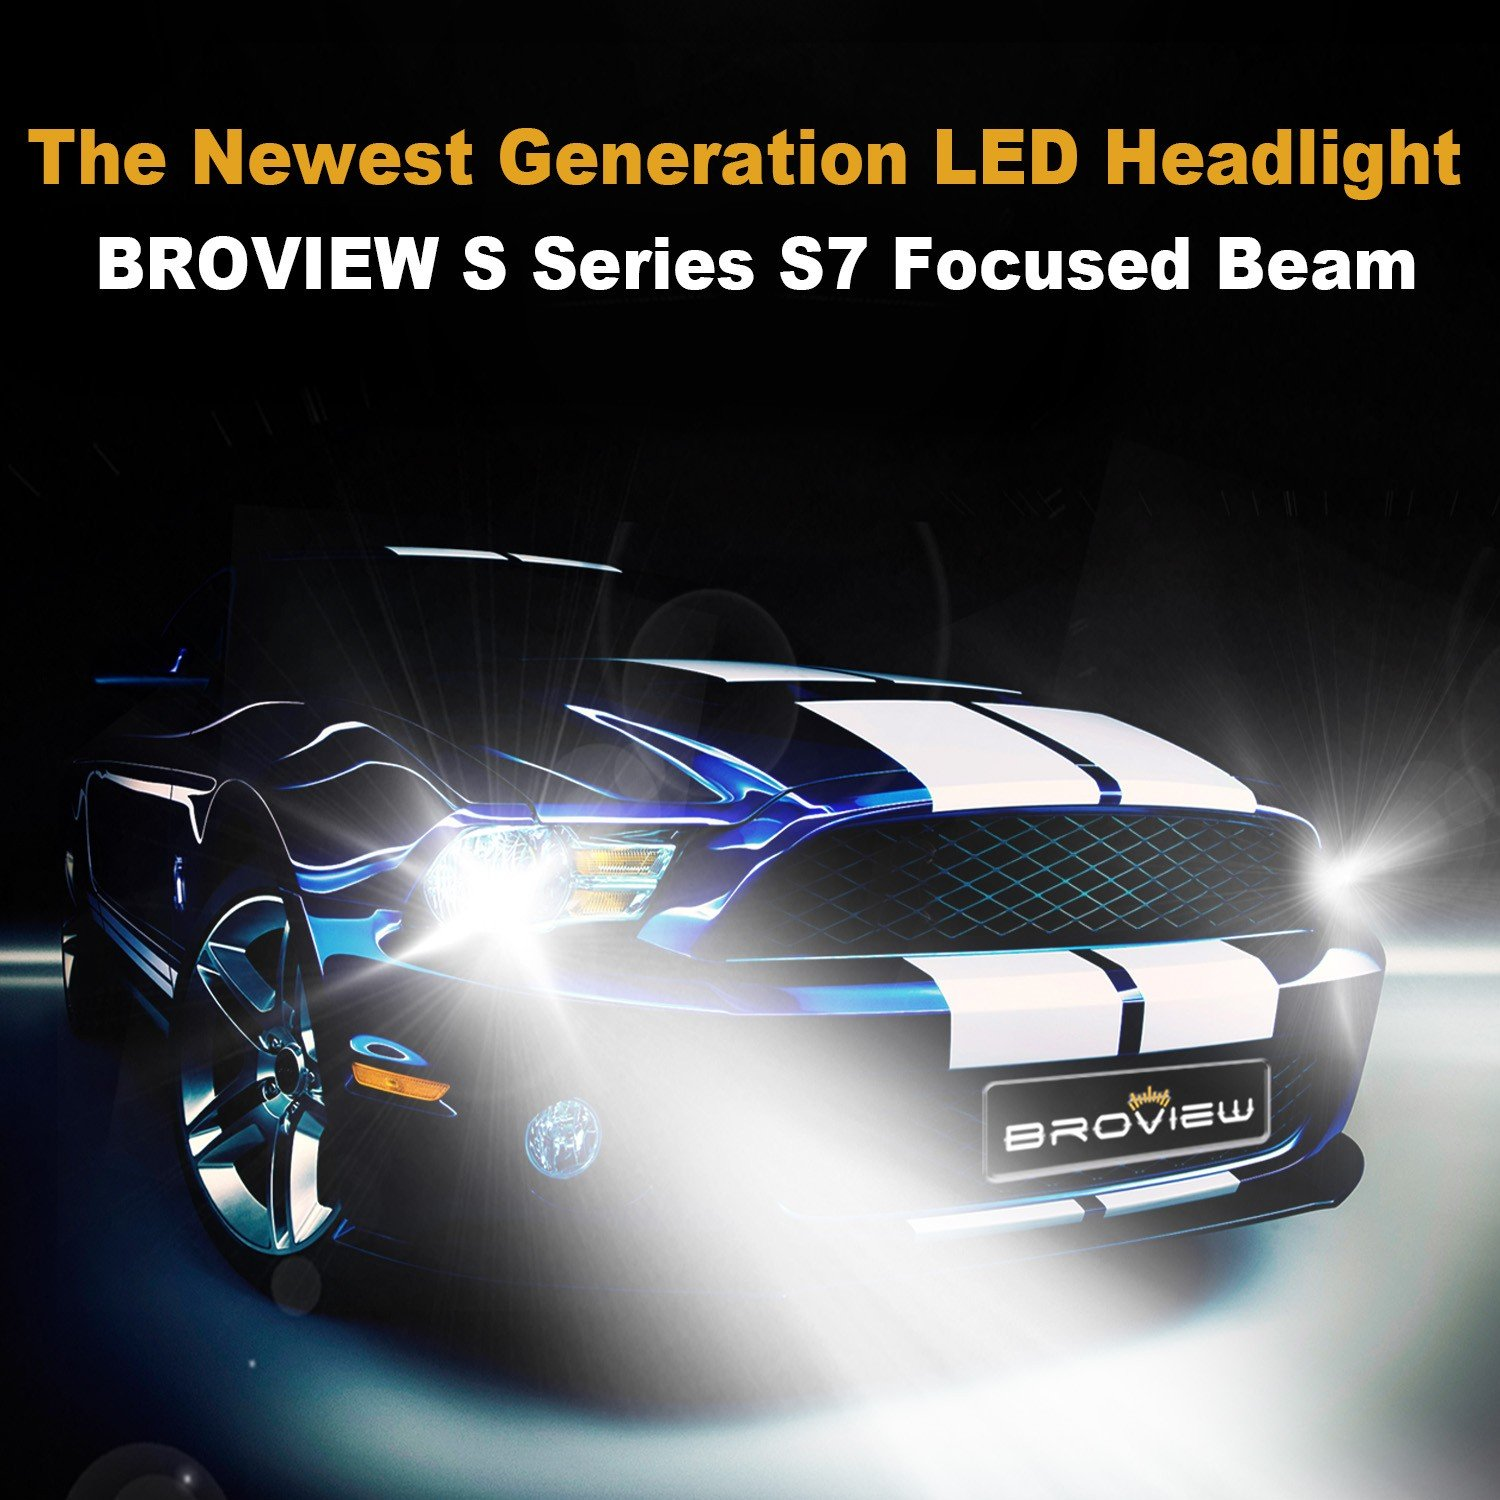 Broview S7 Led Headlight Bulbs W Clear Arc Beam Kit 50w Exciting Scout Crafts 1 Or 2 Headlamp 8000lm 6500k White Cree Lights For Cars Replace Hid Xenon Headlights